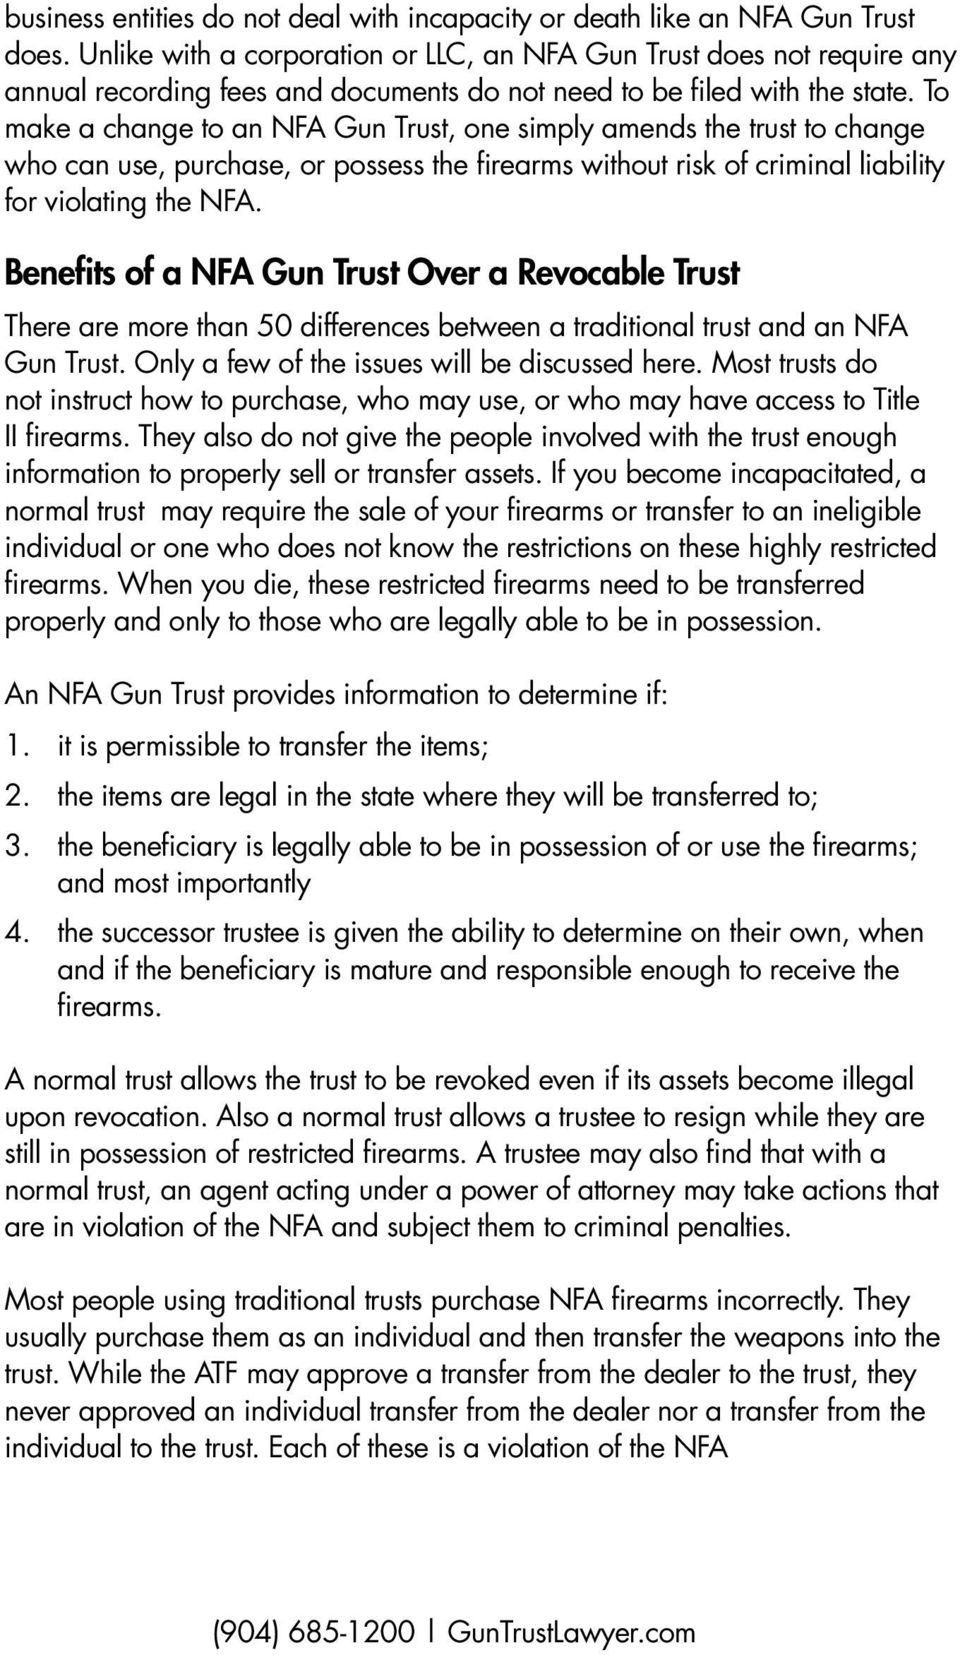 To make a change to an NFA Gun Trust, one simply amends the trust to change who can use, purchase, or possess the firearms without risk of criminal liability for violating the NFA.